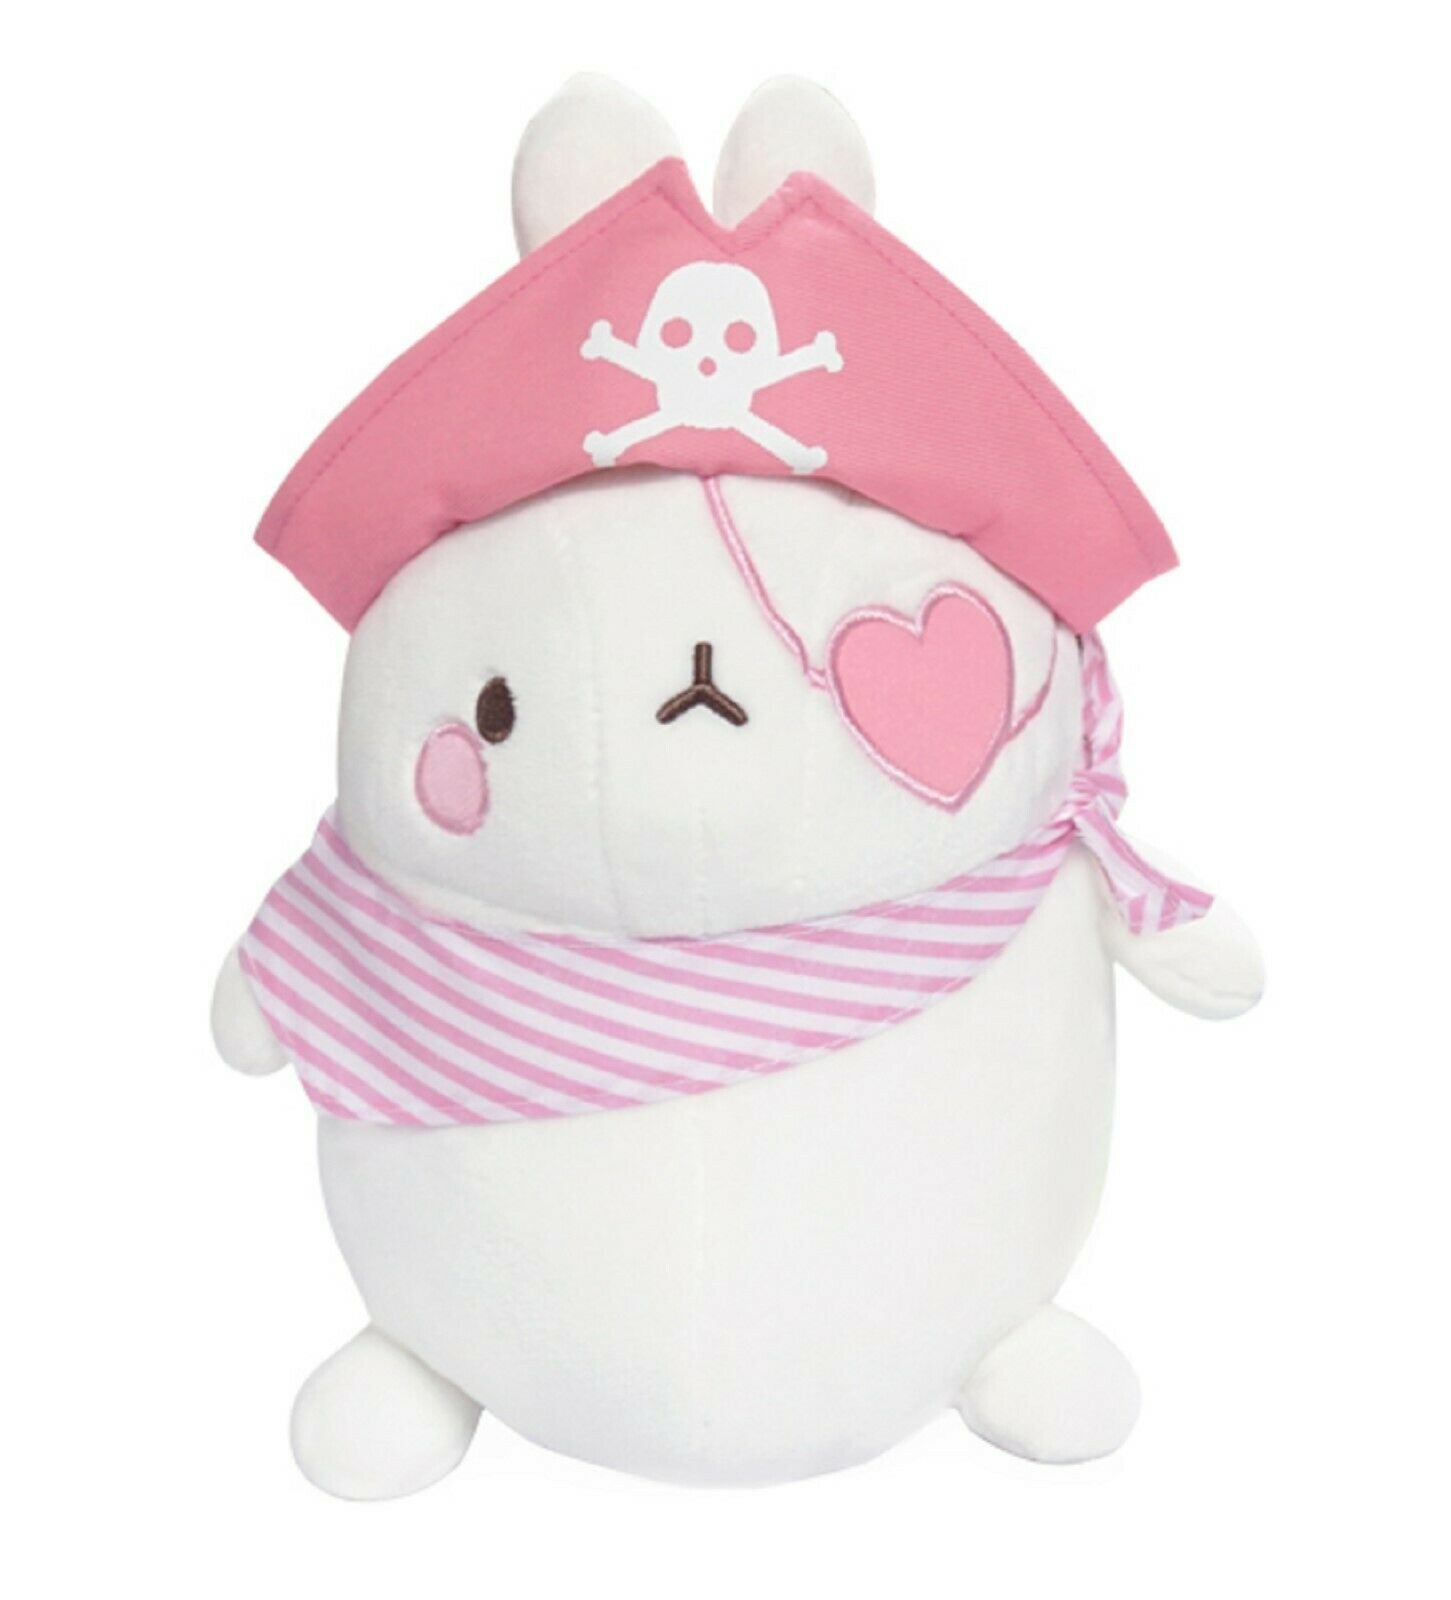 Molang Pirate Stuffed Animal Rabbit Plush Toy 8.6 inches 22cm (Pink)